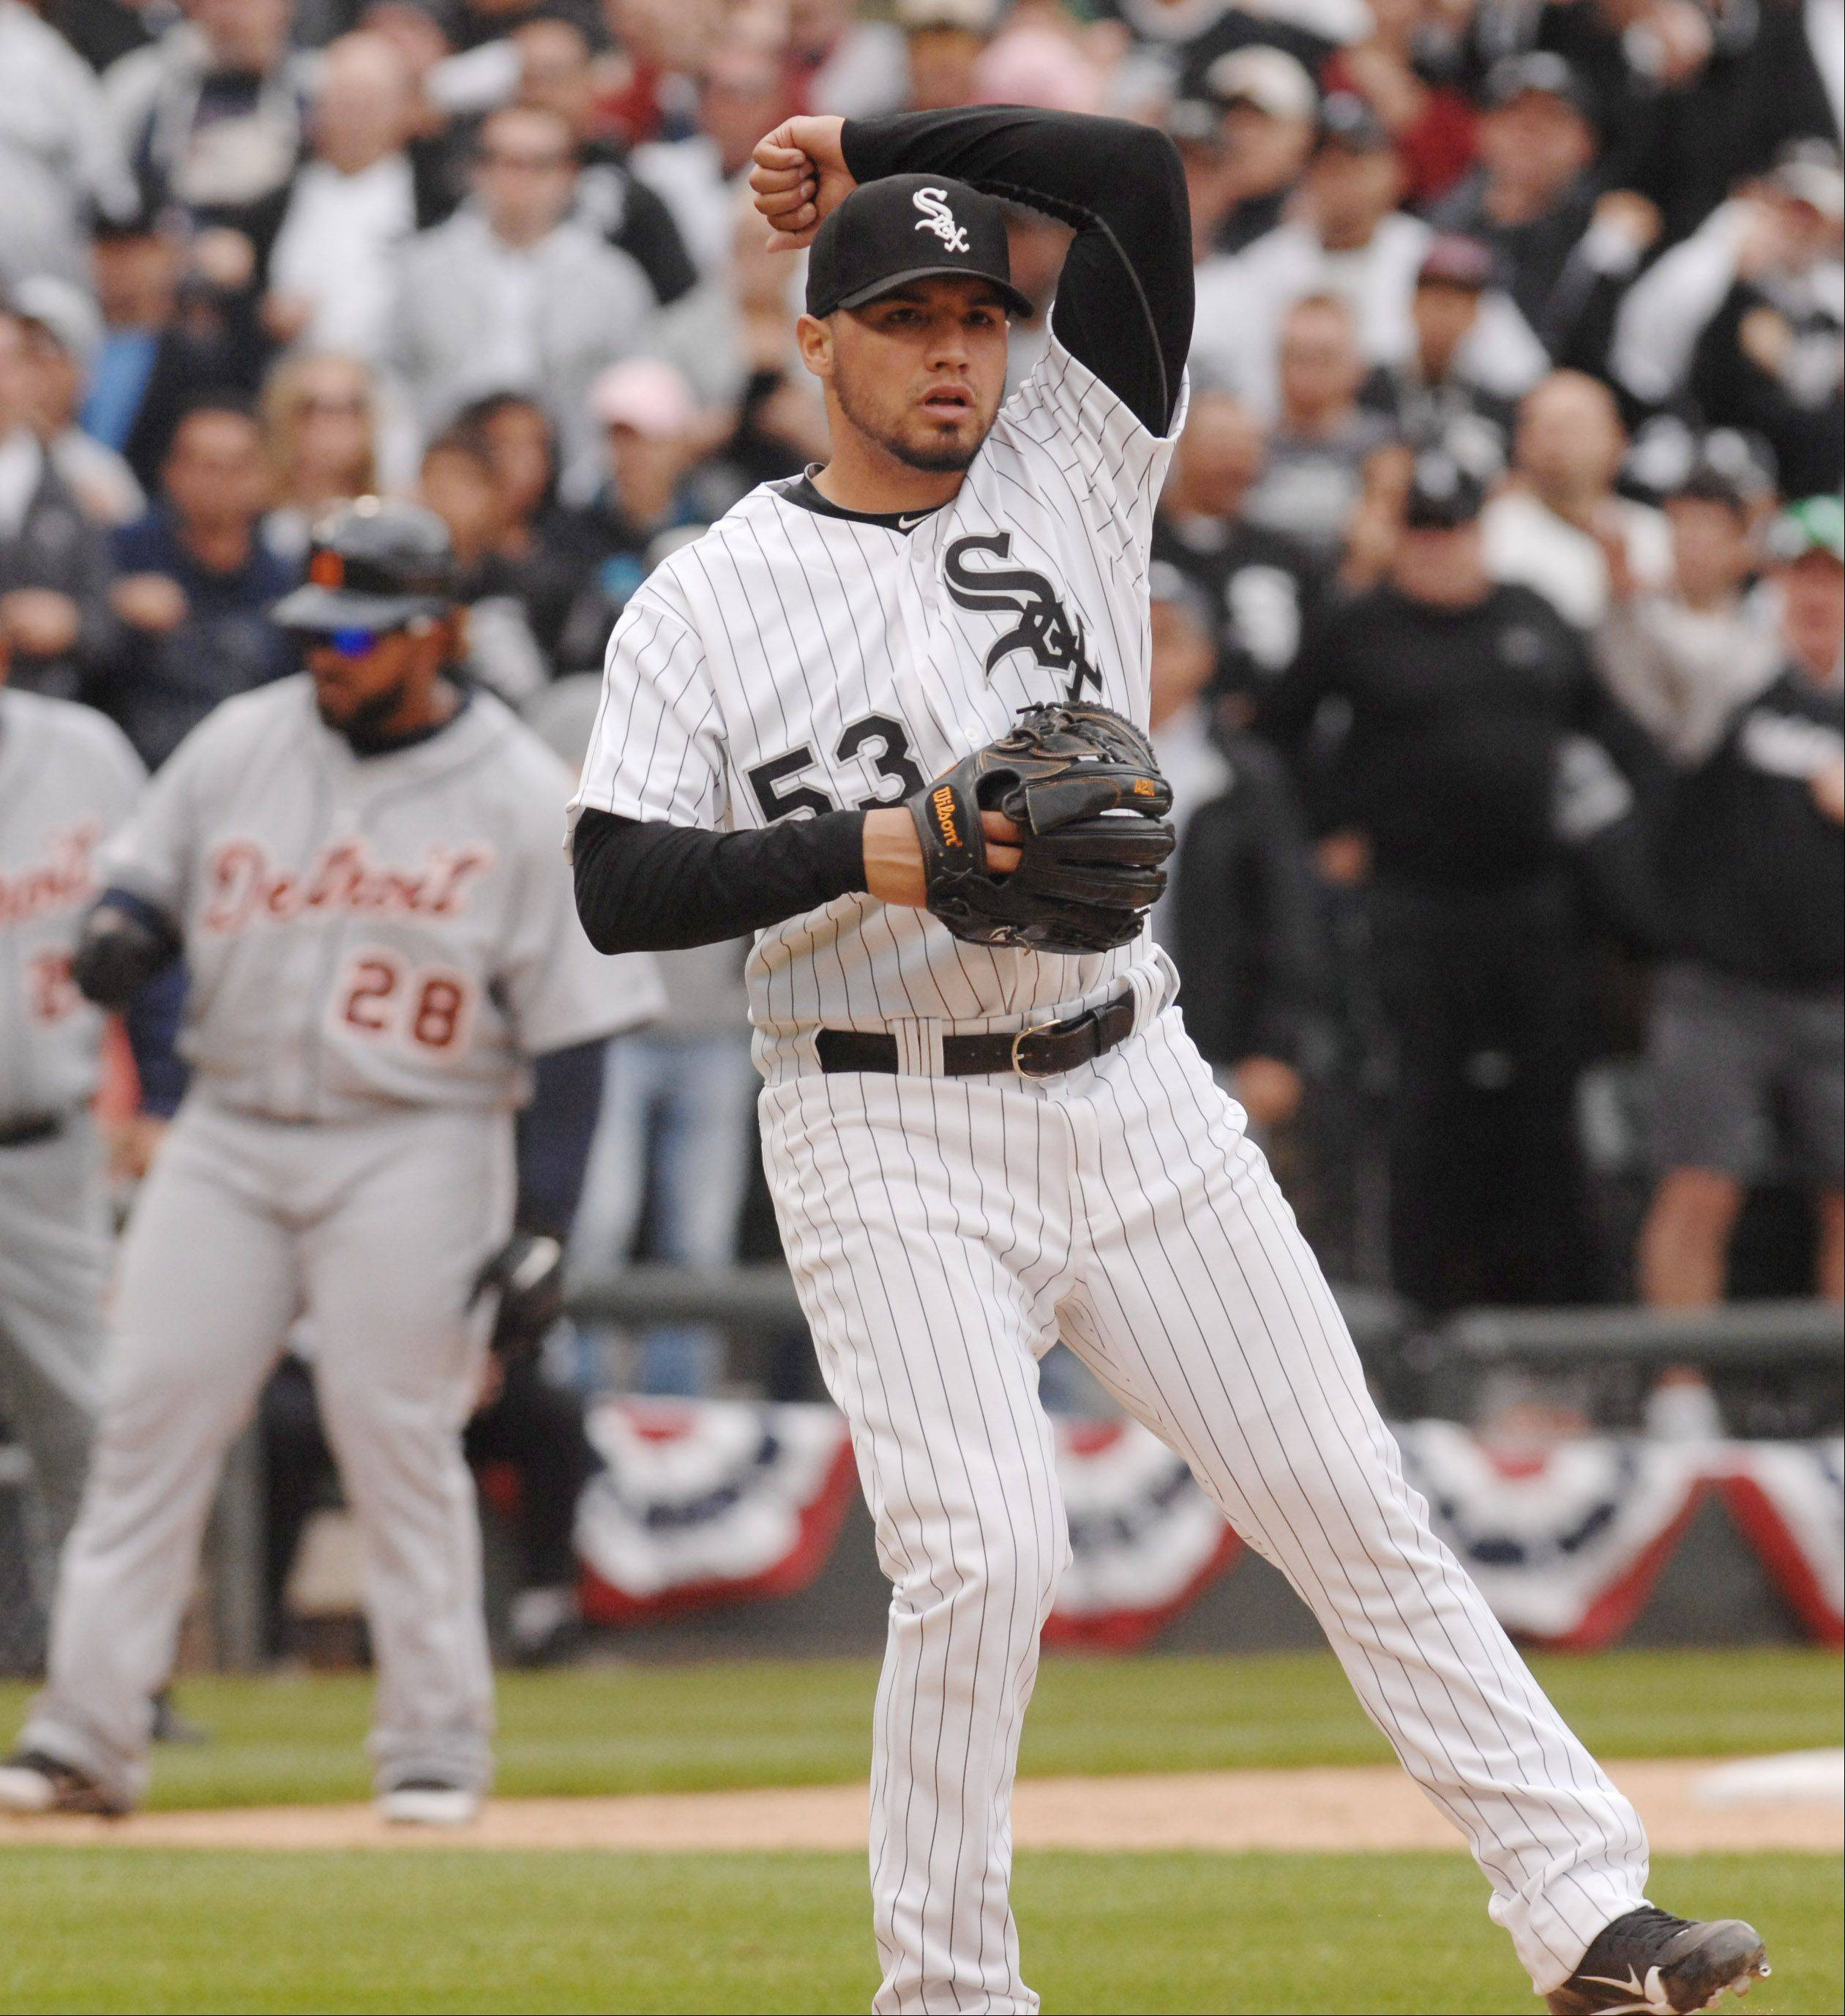 White Sox pitcher Hector Santiago celebrates his victory over the Tigers as he pumps his fist in the 5-2 opening game in Chicago on Friday.